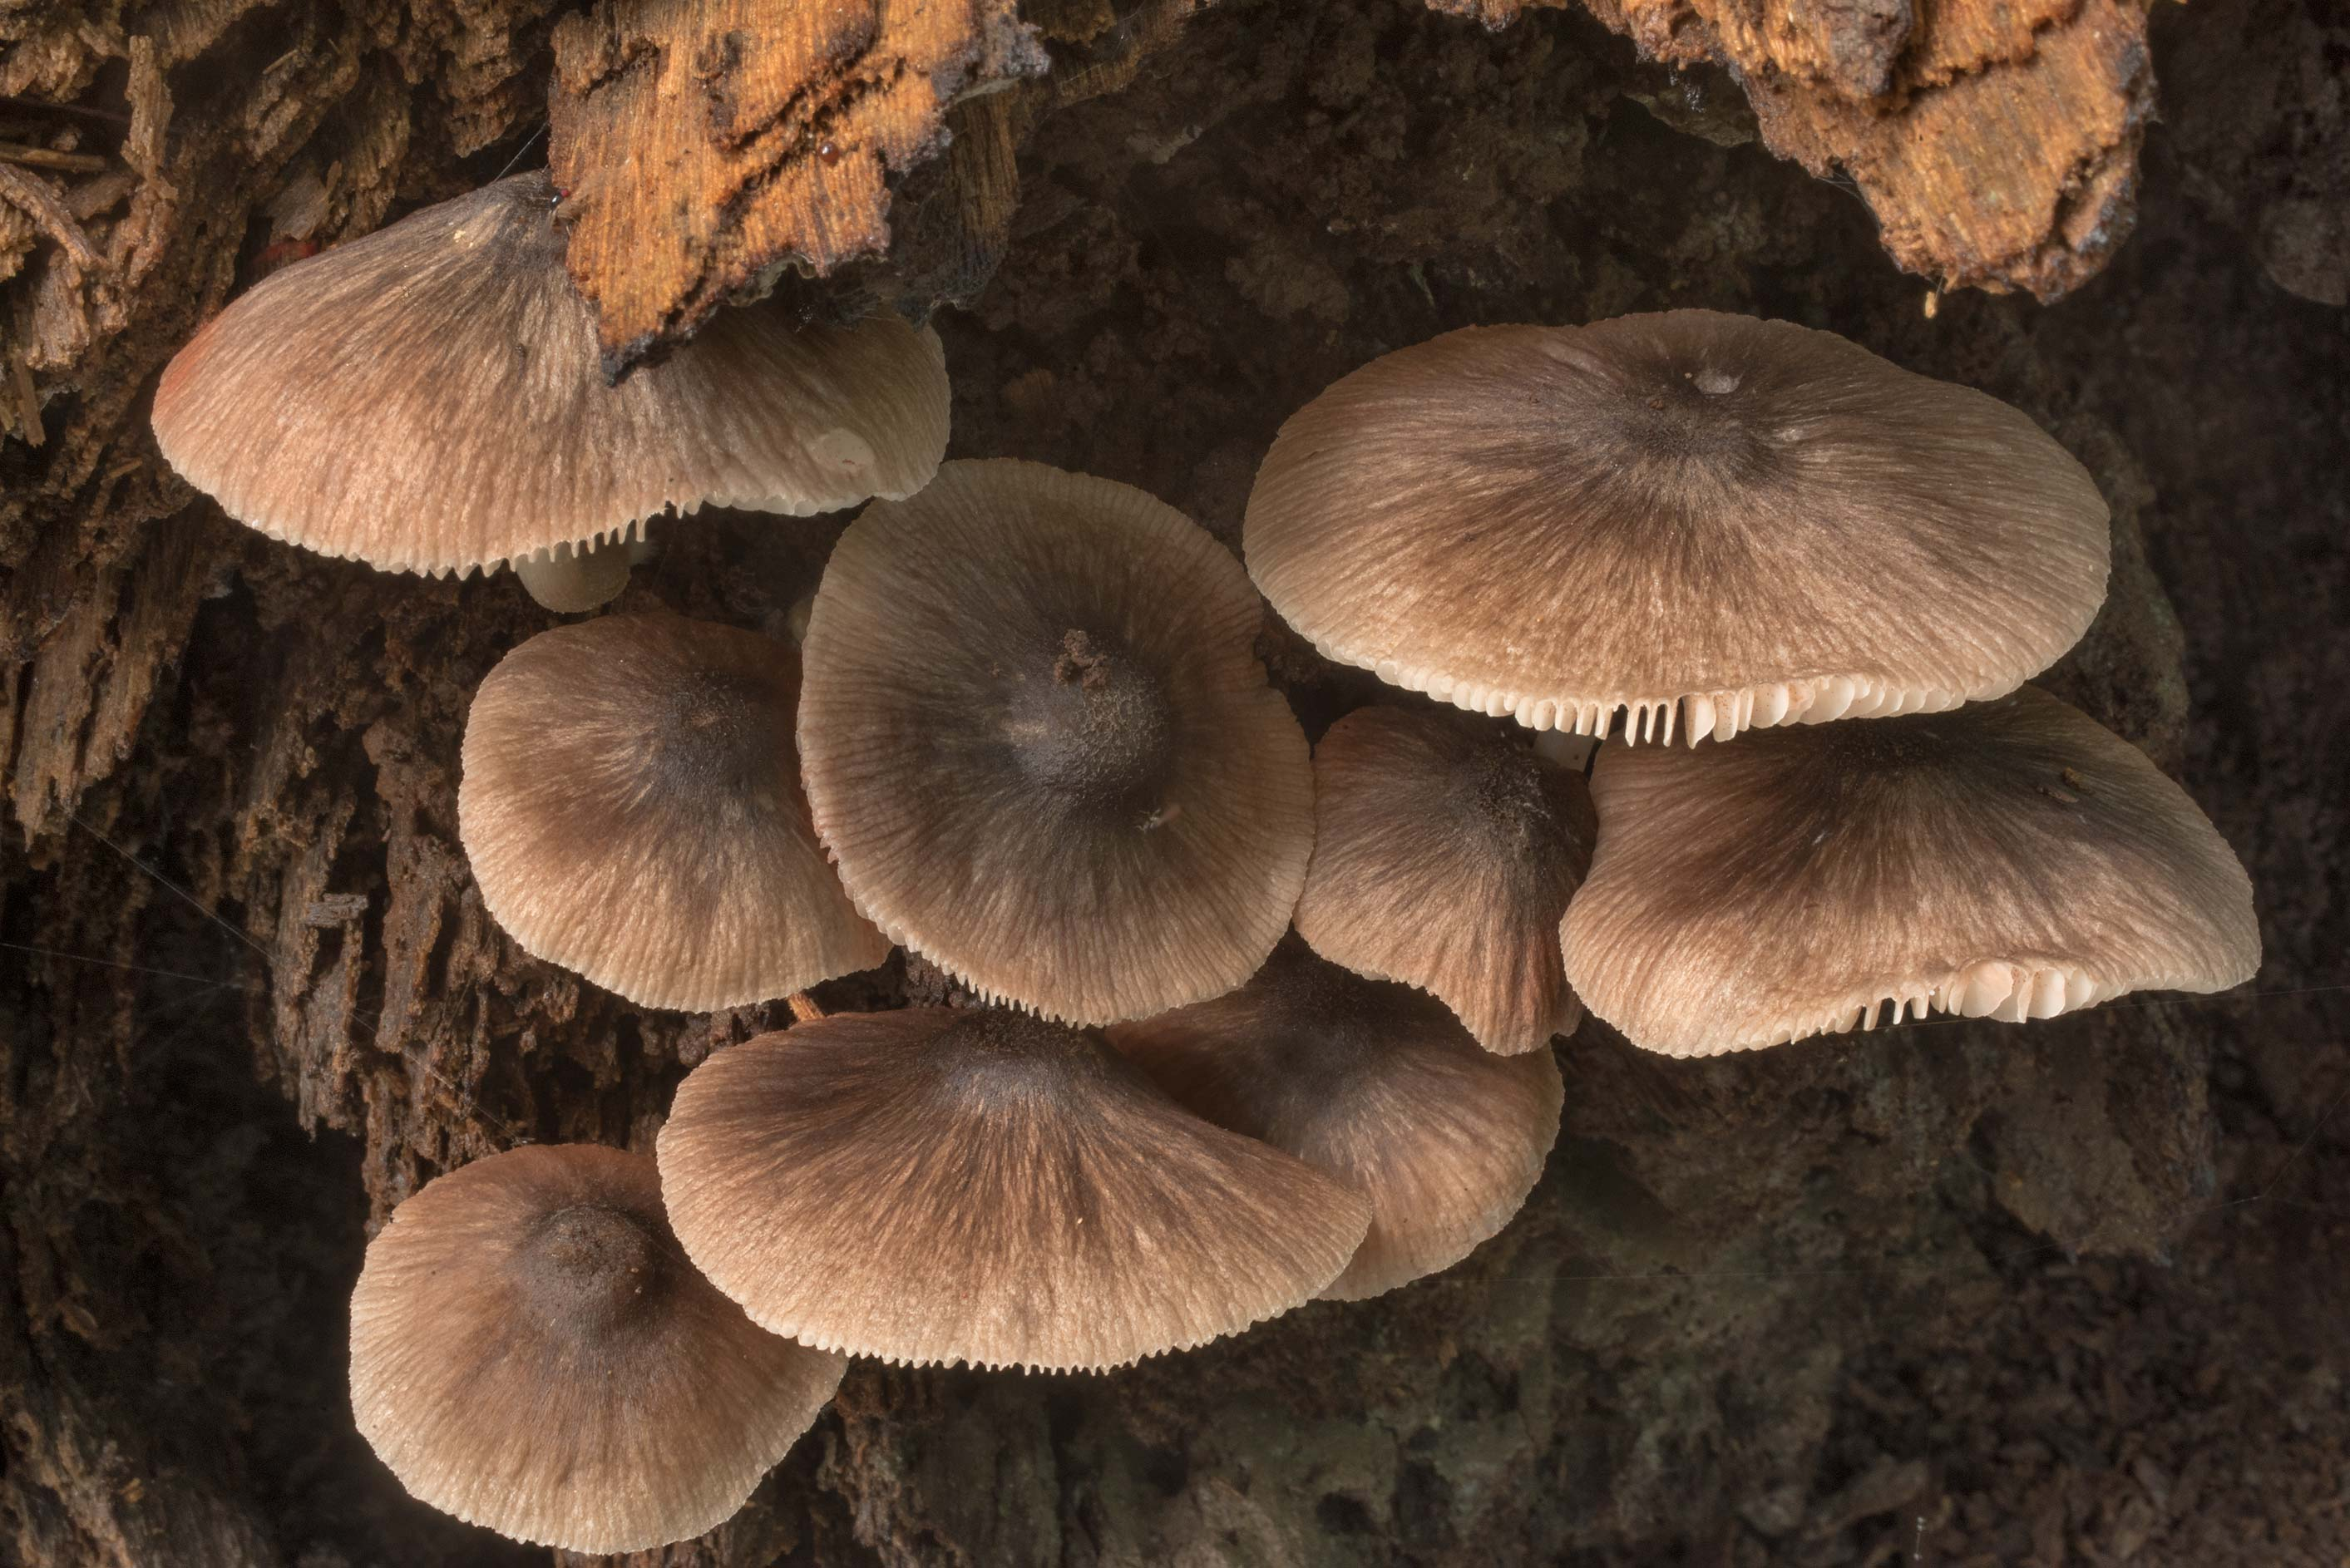 Pleated shield mushrooms (Pluteus longistriatus...National Forest near Huntsville. Texas